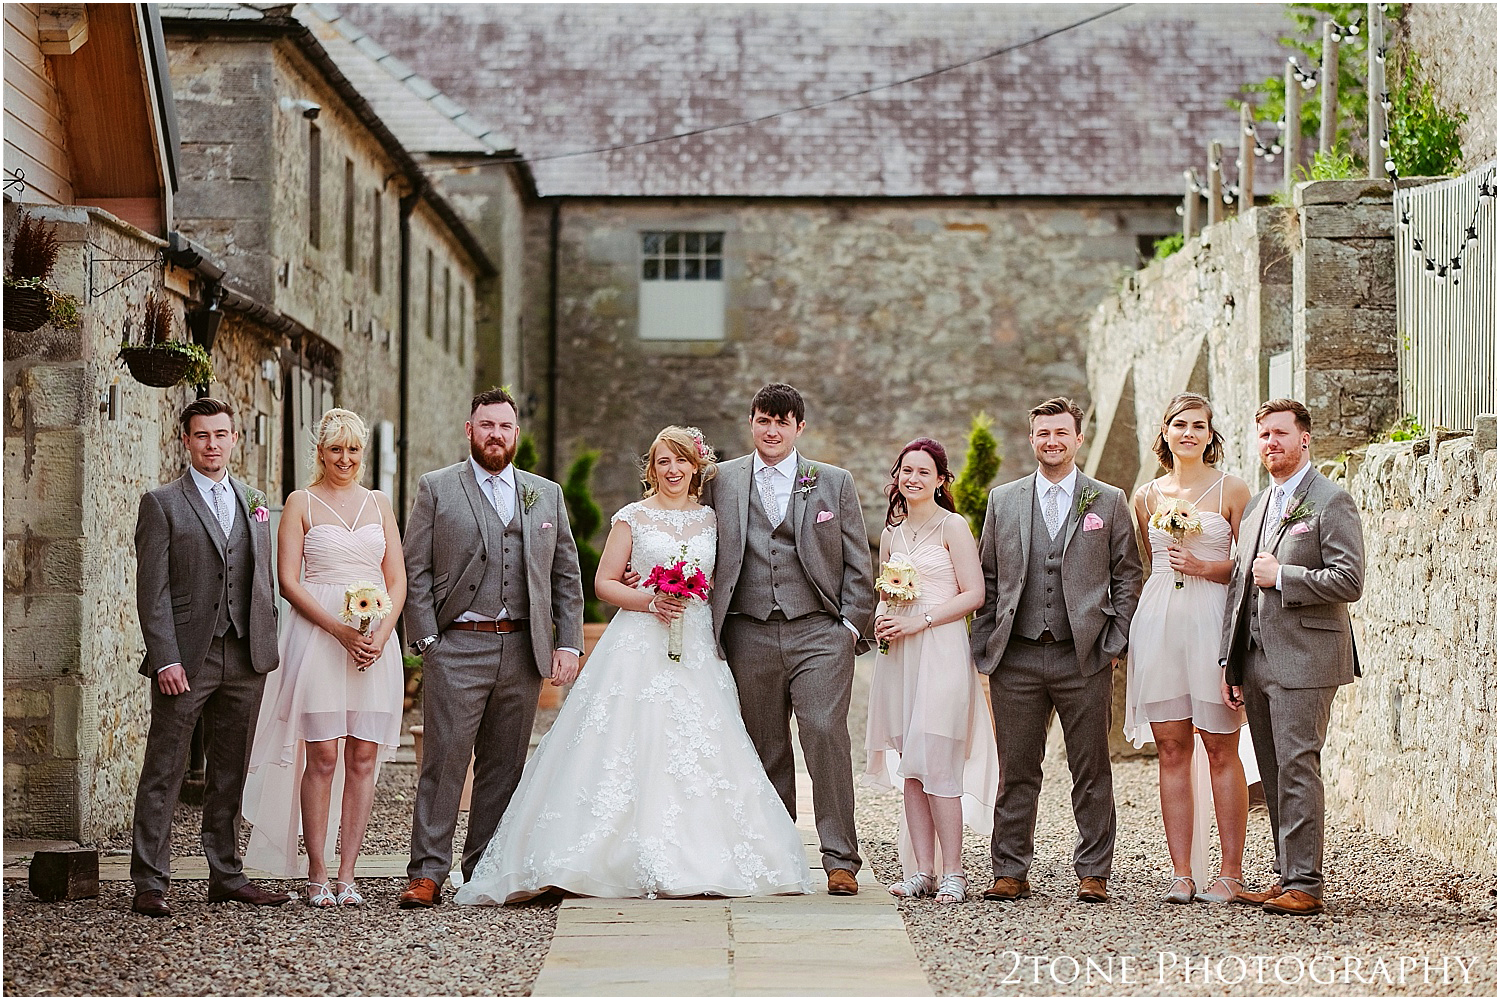 Doxford barns wedding photographer 047.jpg